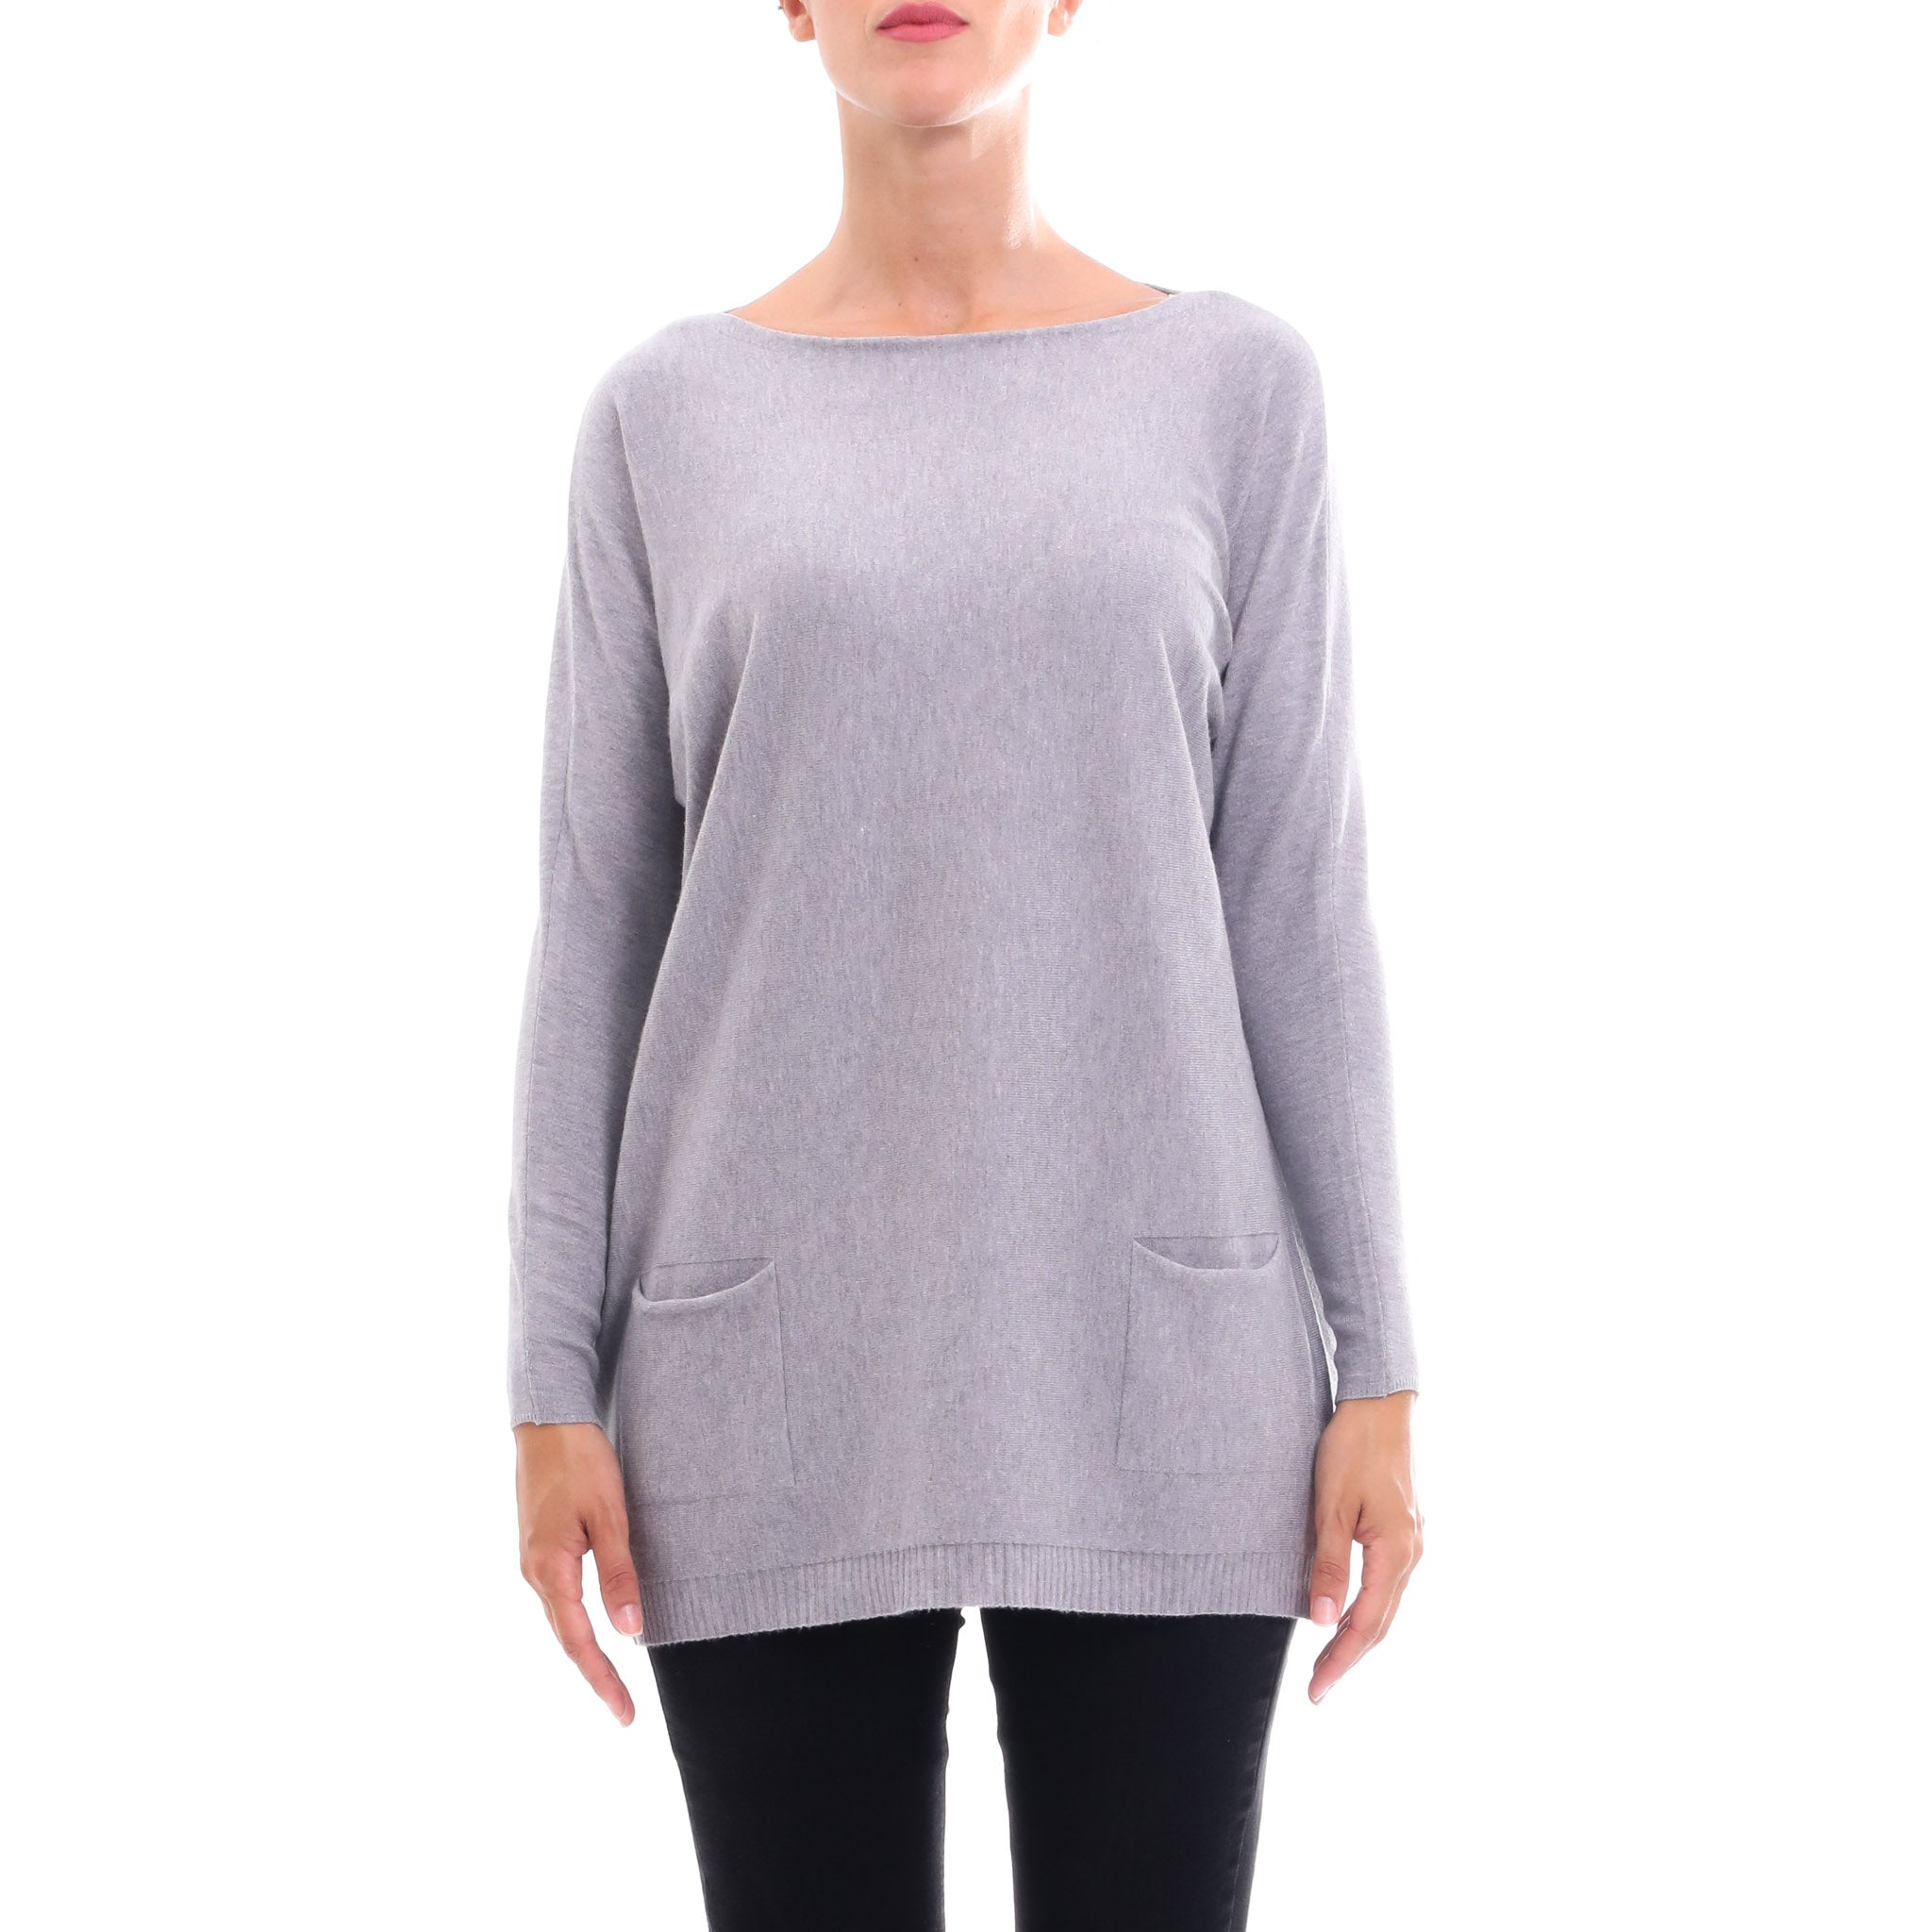 Cashmere Company Knitted Wool Blend Sweater